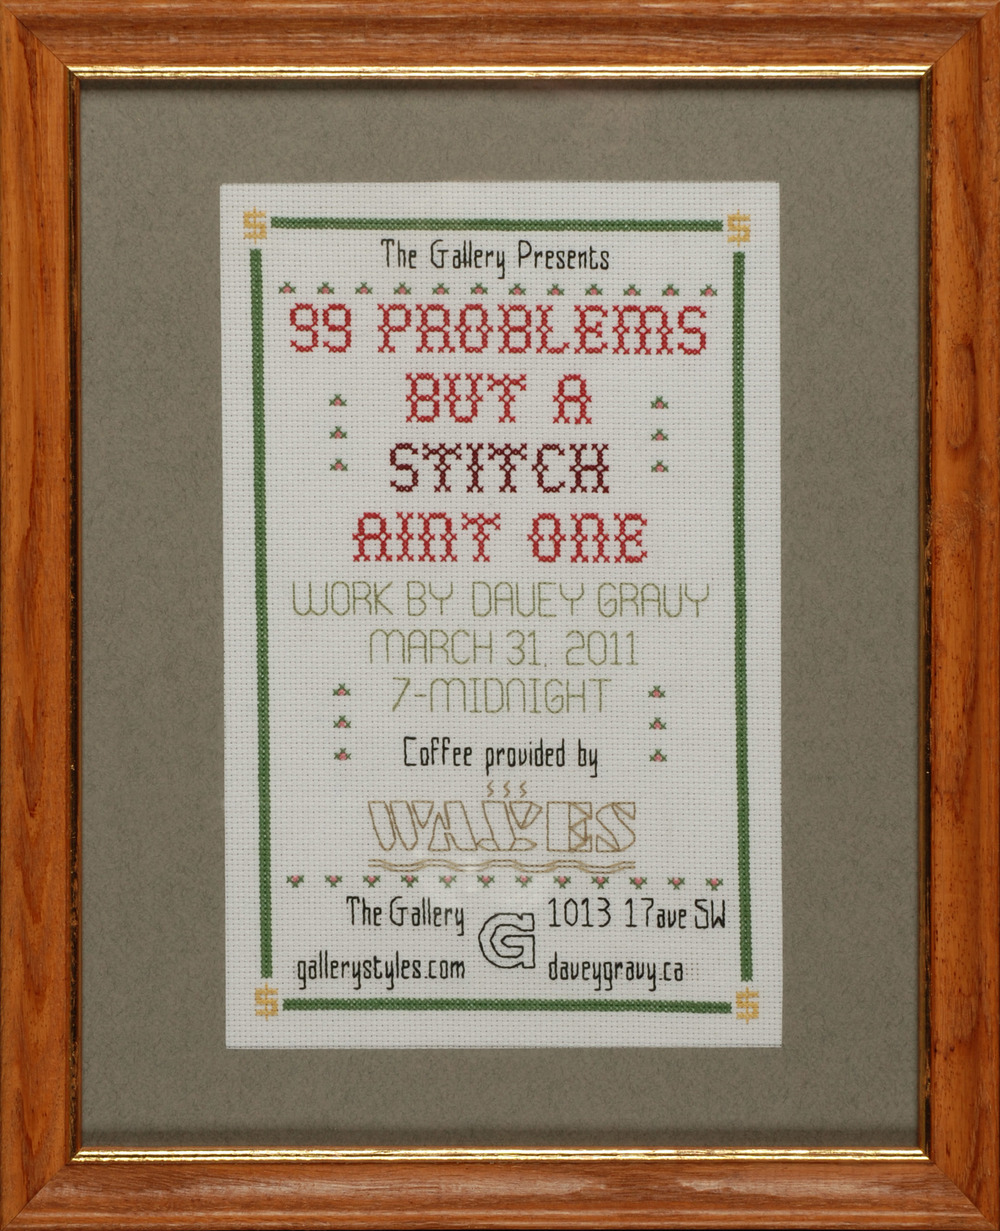 99 Problems Show Poster 2011.jpg